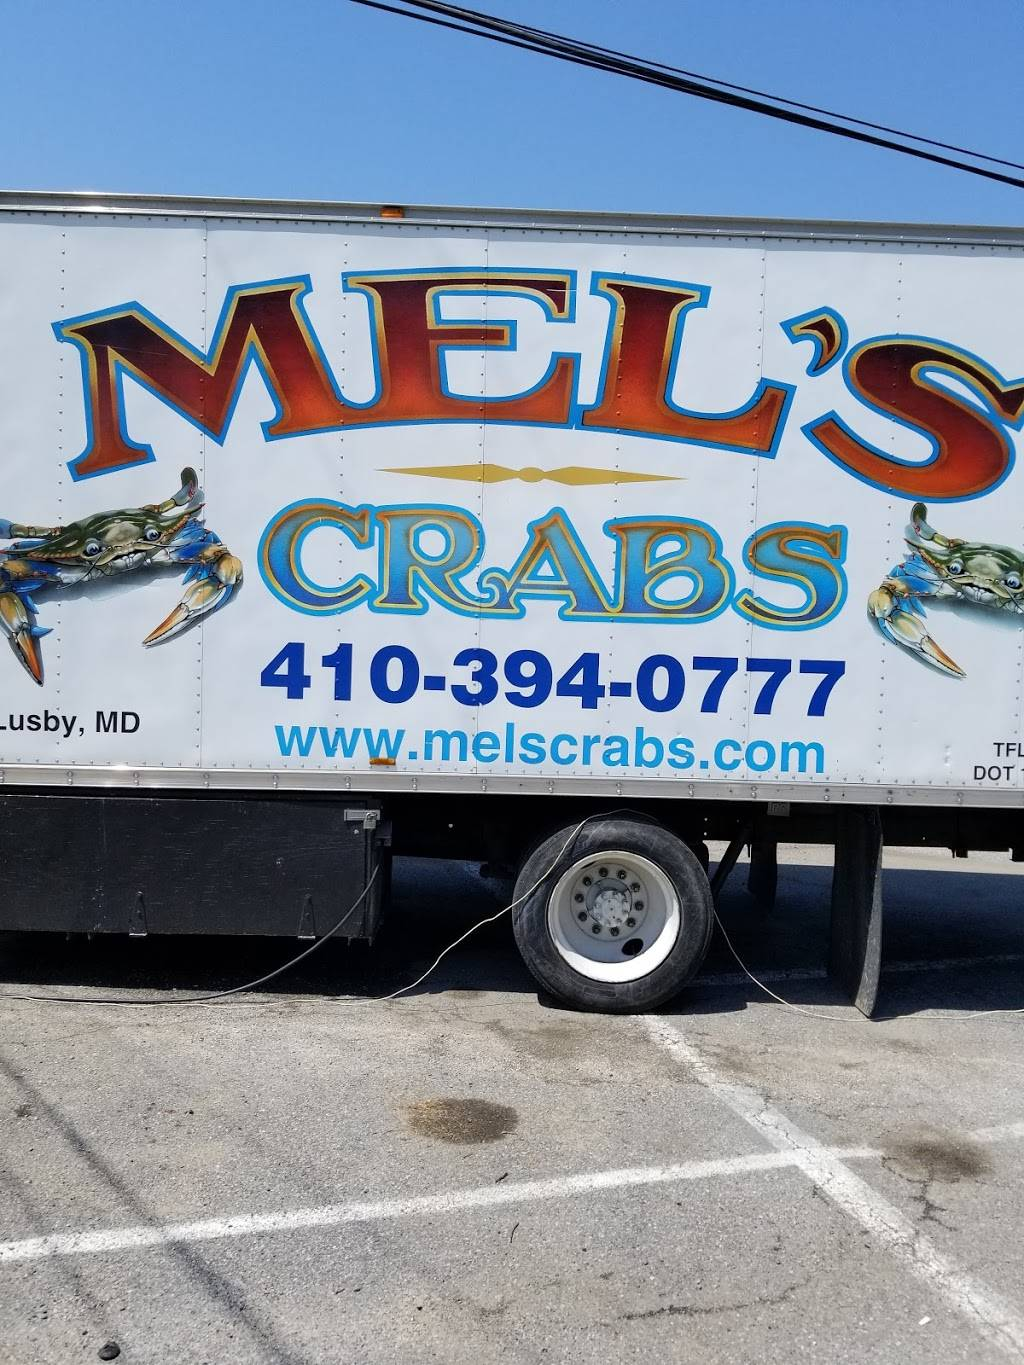 Mels Crabs | restaurant | 5005 Solomons Island Rd, Huntingtown, MD 20639, USA | 4103940777 OR +1 410-394-0777